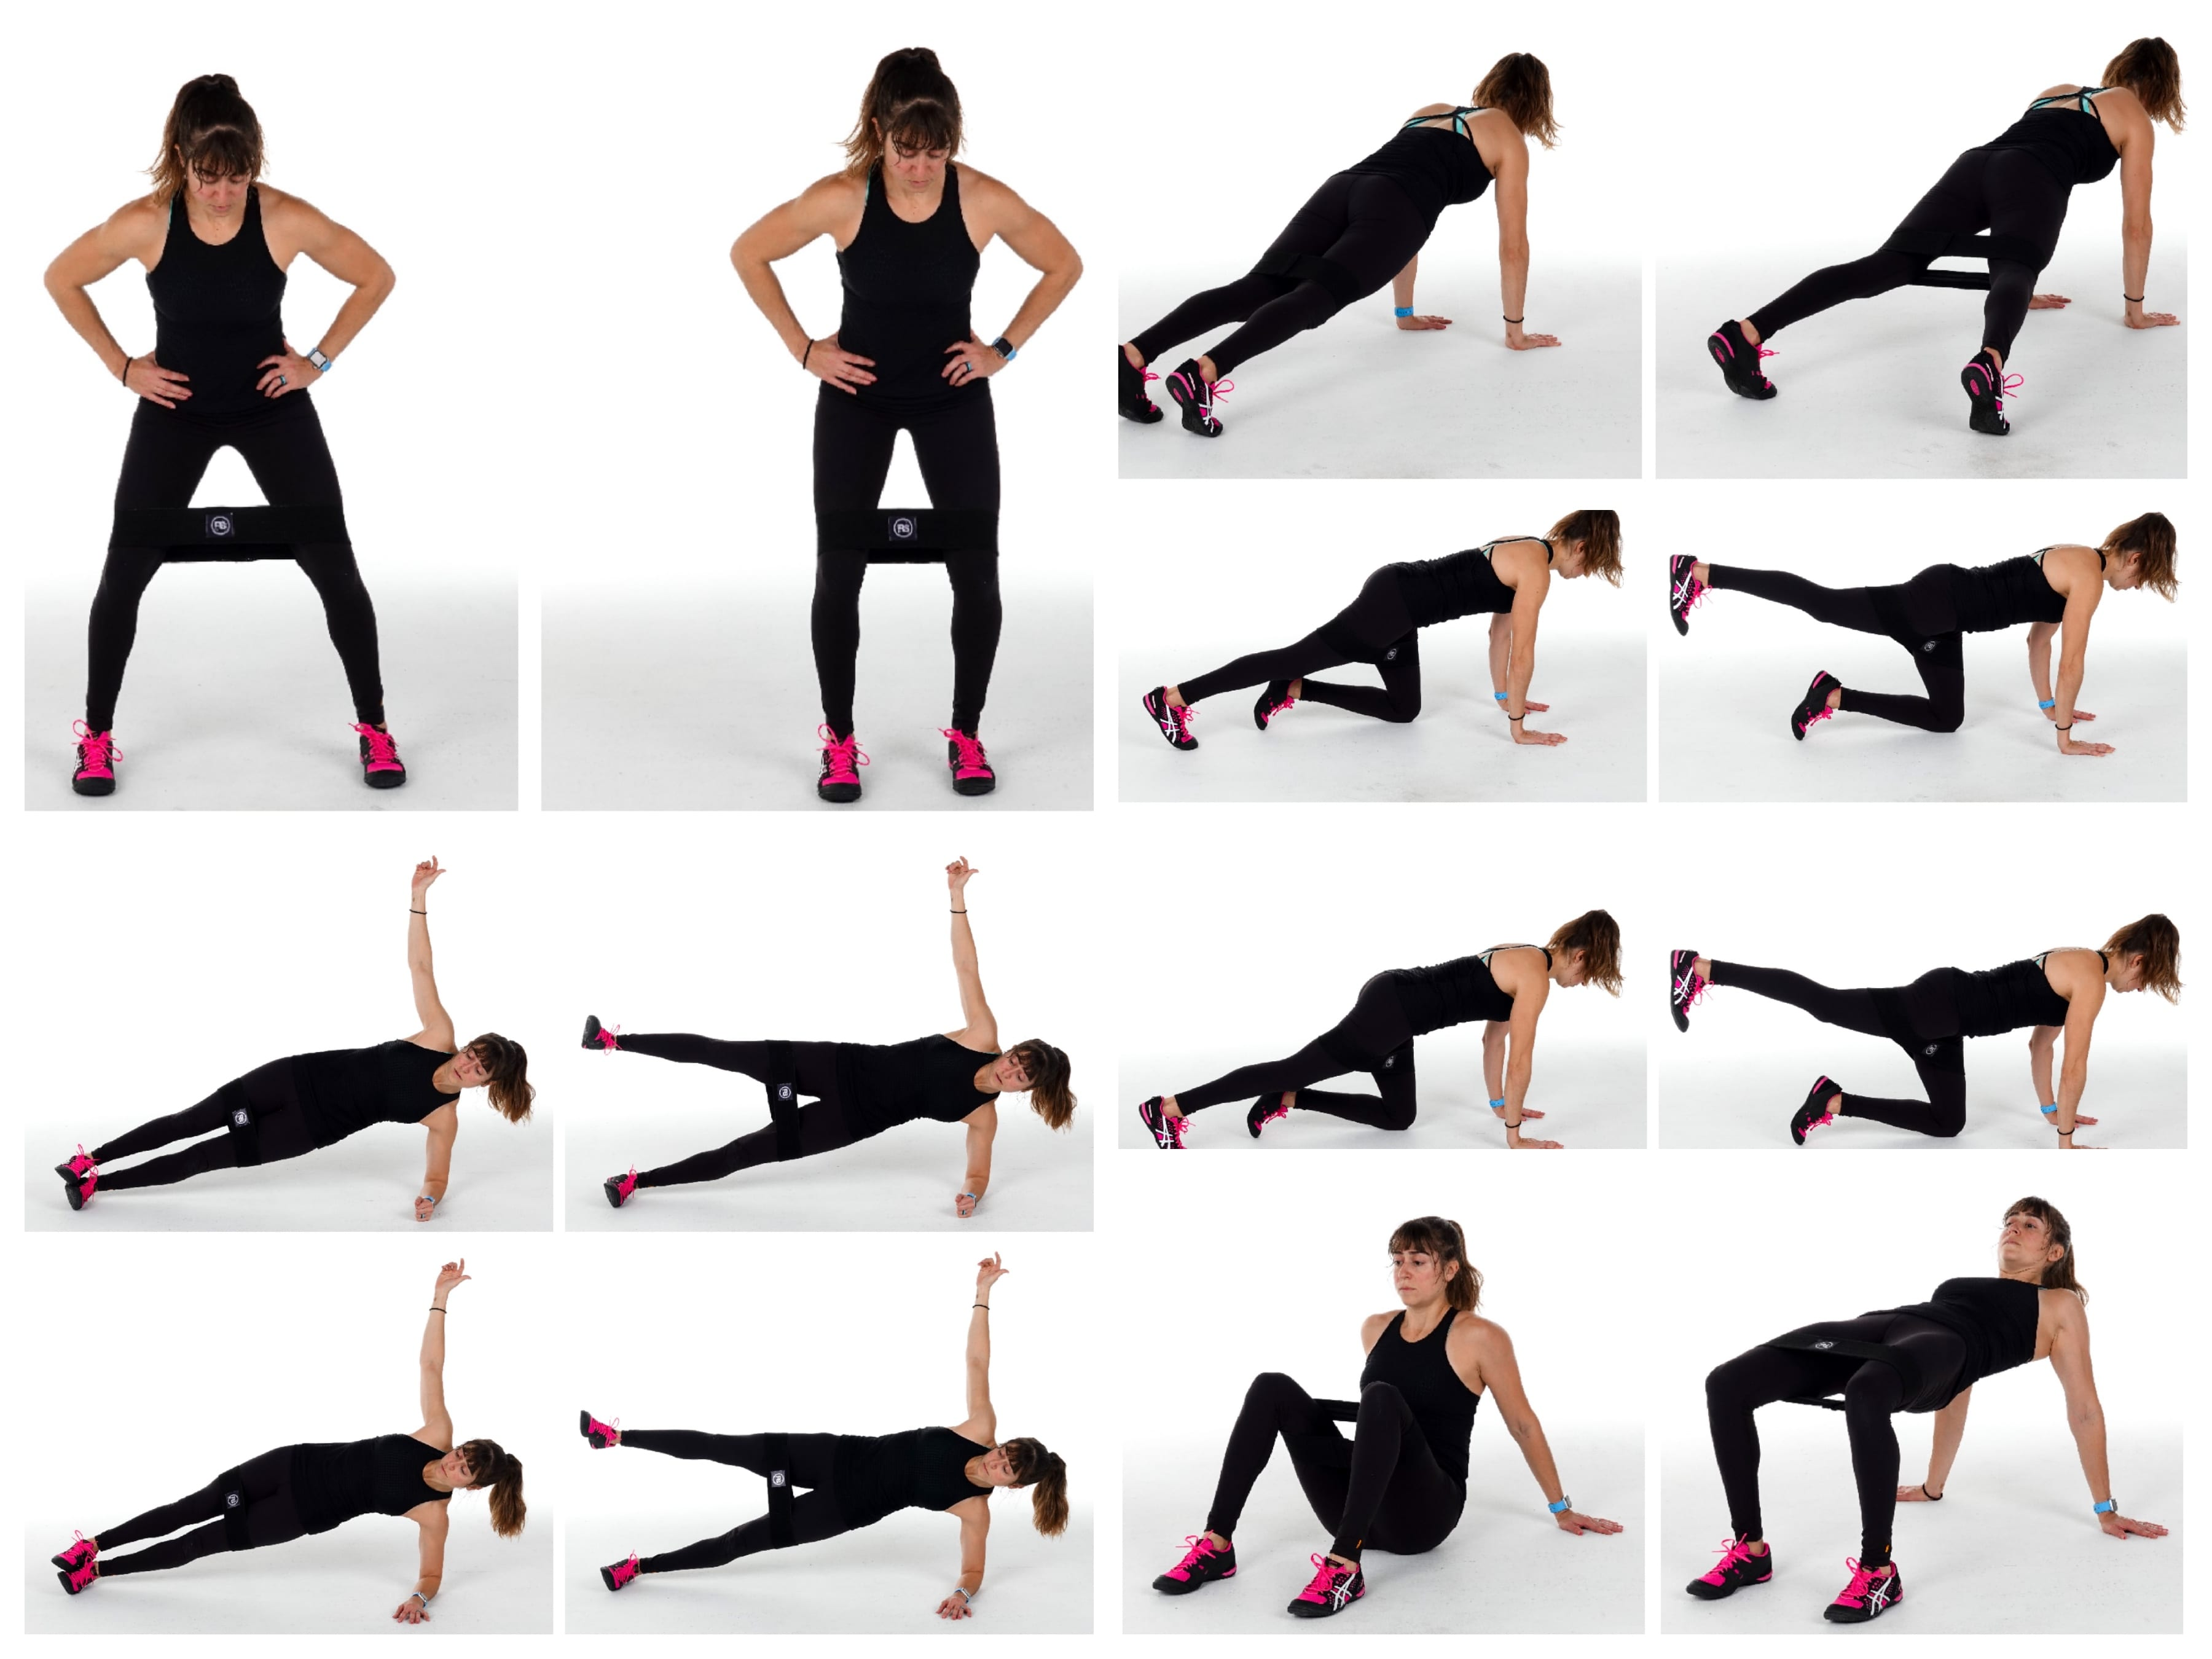 10 Booty Band Moves To Activate Your Glutes